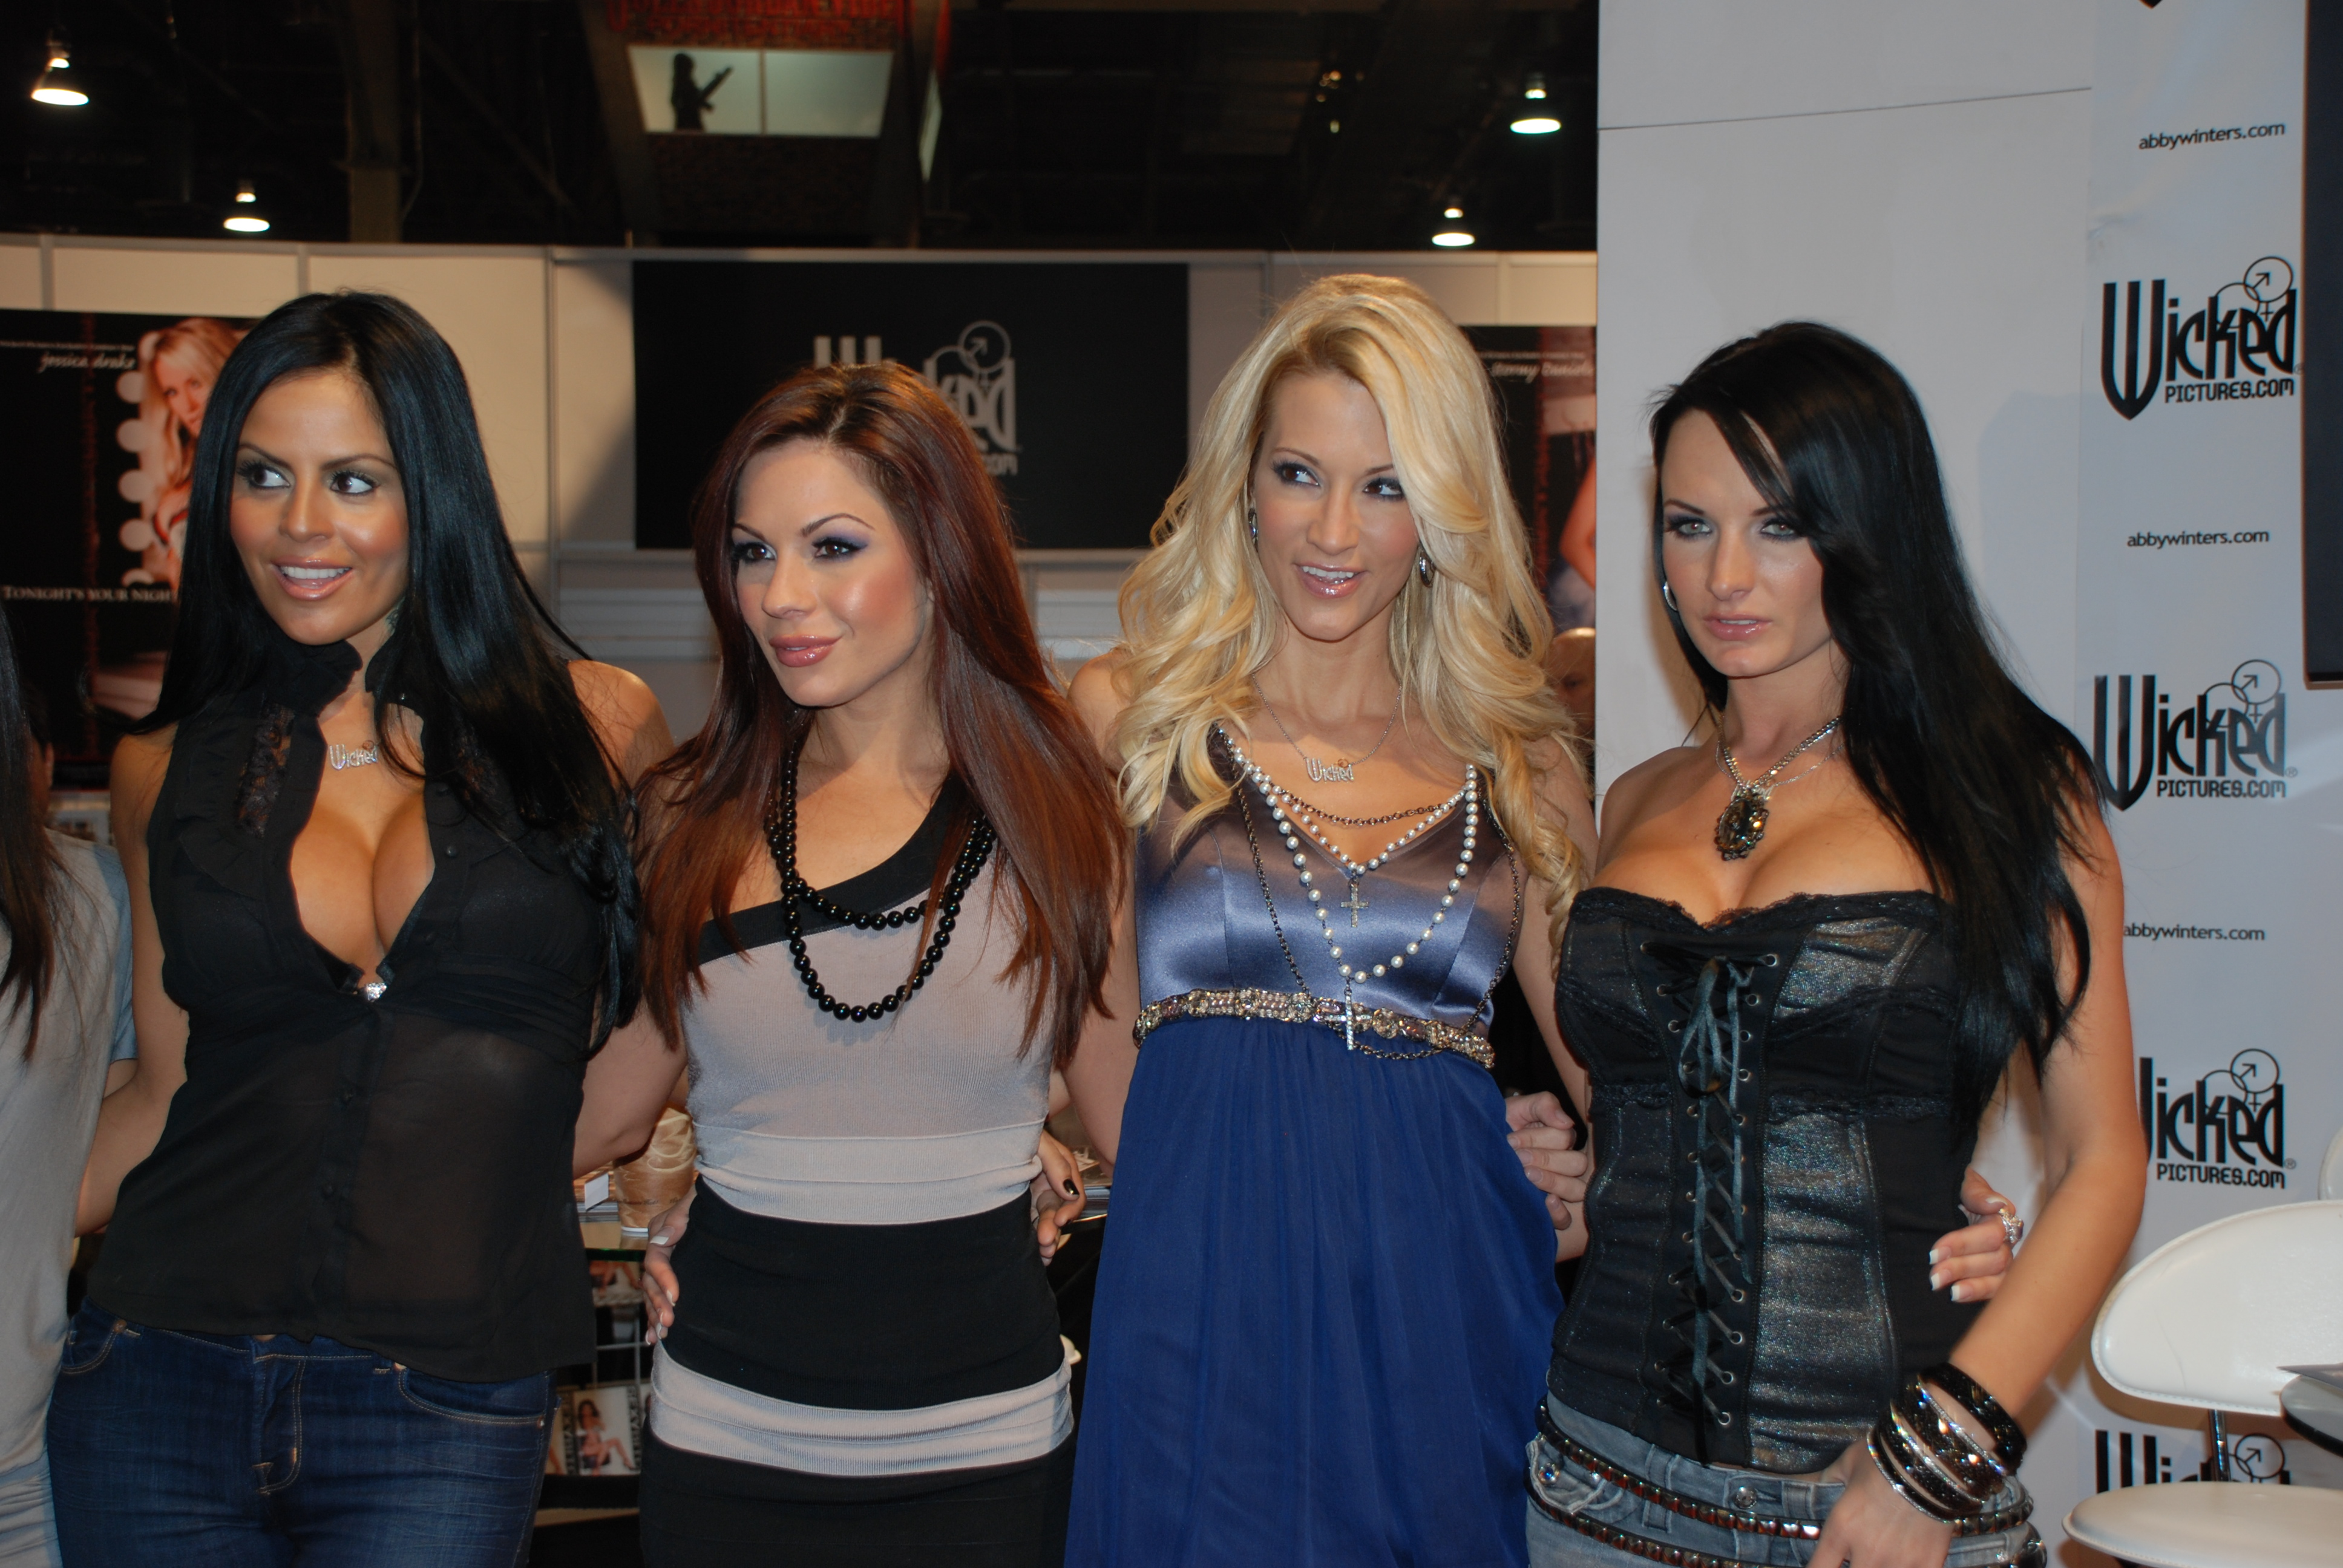 Filewicked Girls At Avn Adult Entertainment Expo 2009 2 Jpg